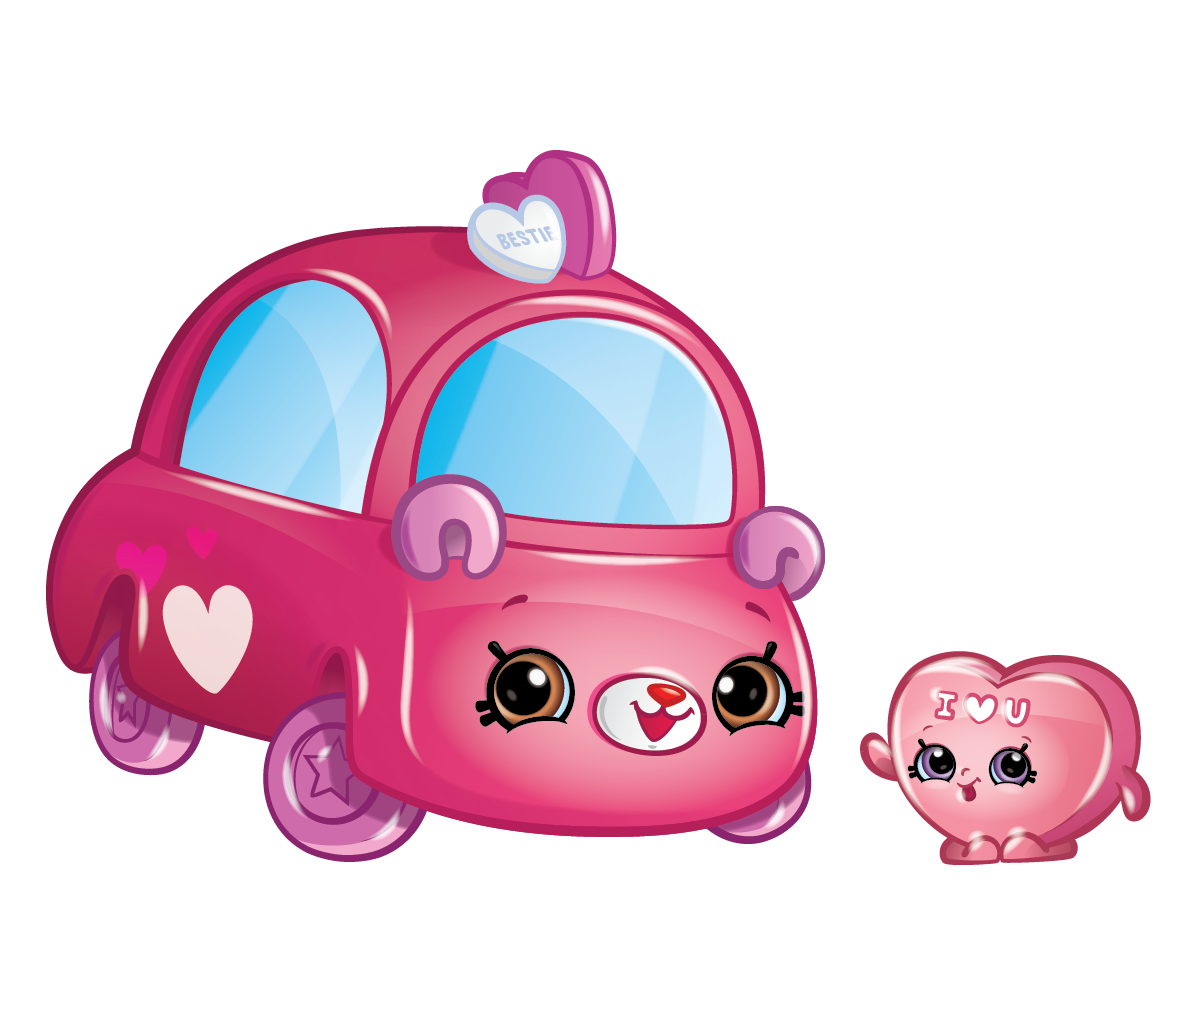 Candi apple clipart jpg free Cutie Cars Characters - Meet Your Favourite Cutie Cars Characters jpg free